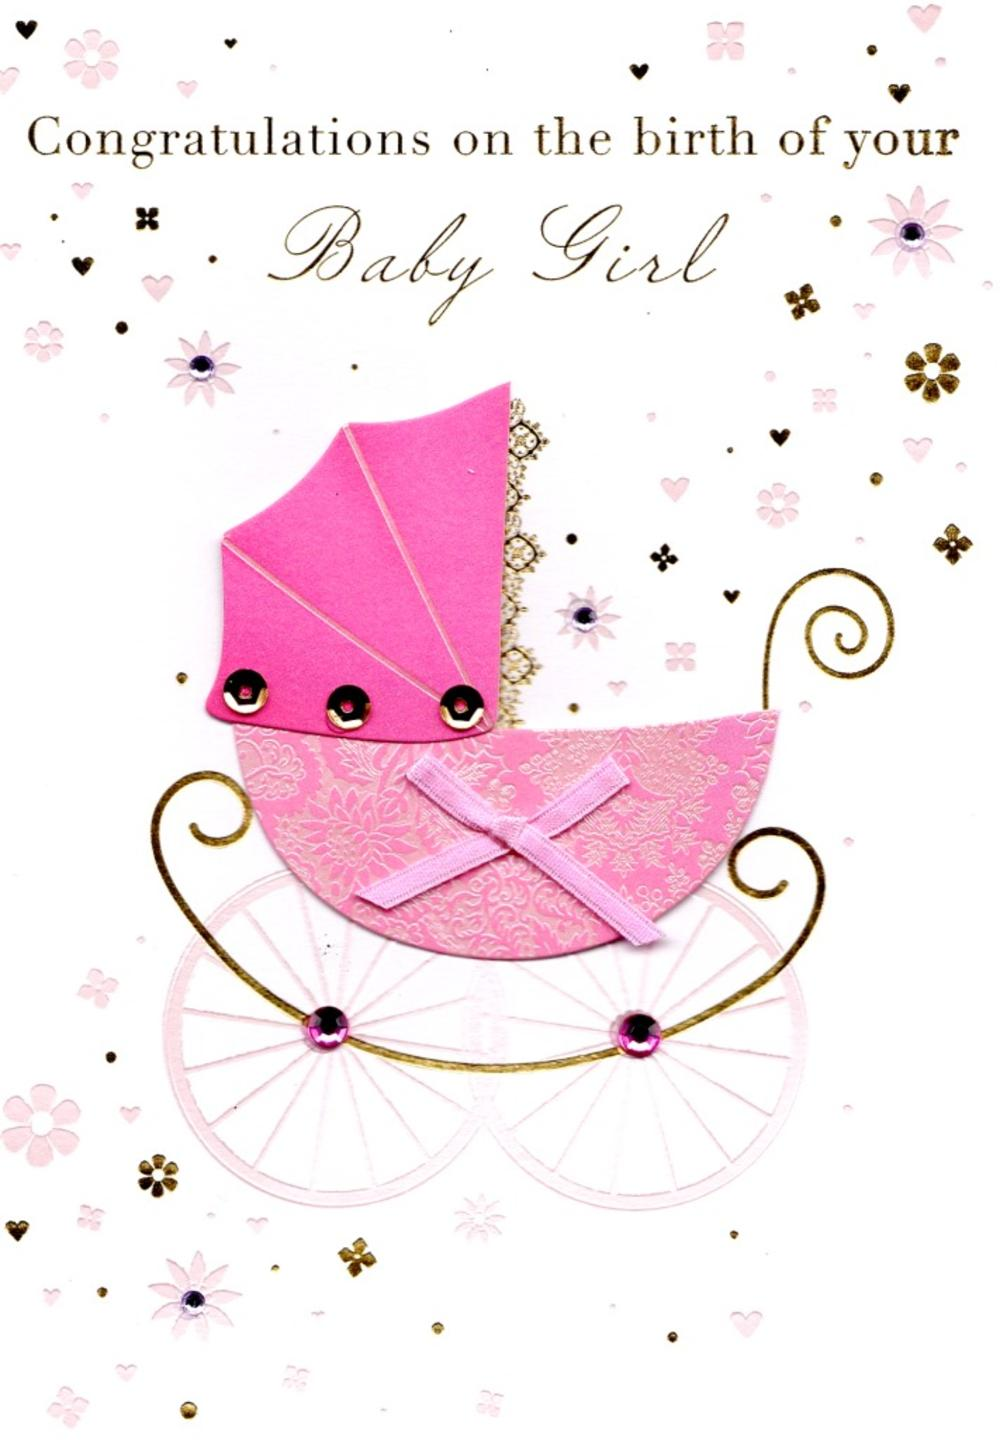 Congratulations birth new baby girl greeting card cards love kates congratulations birth new baby girl greeting card m4hsunfo